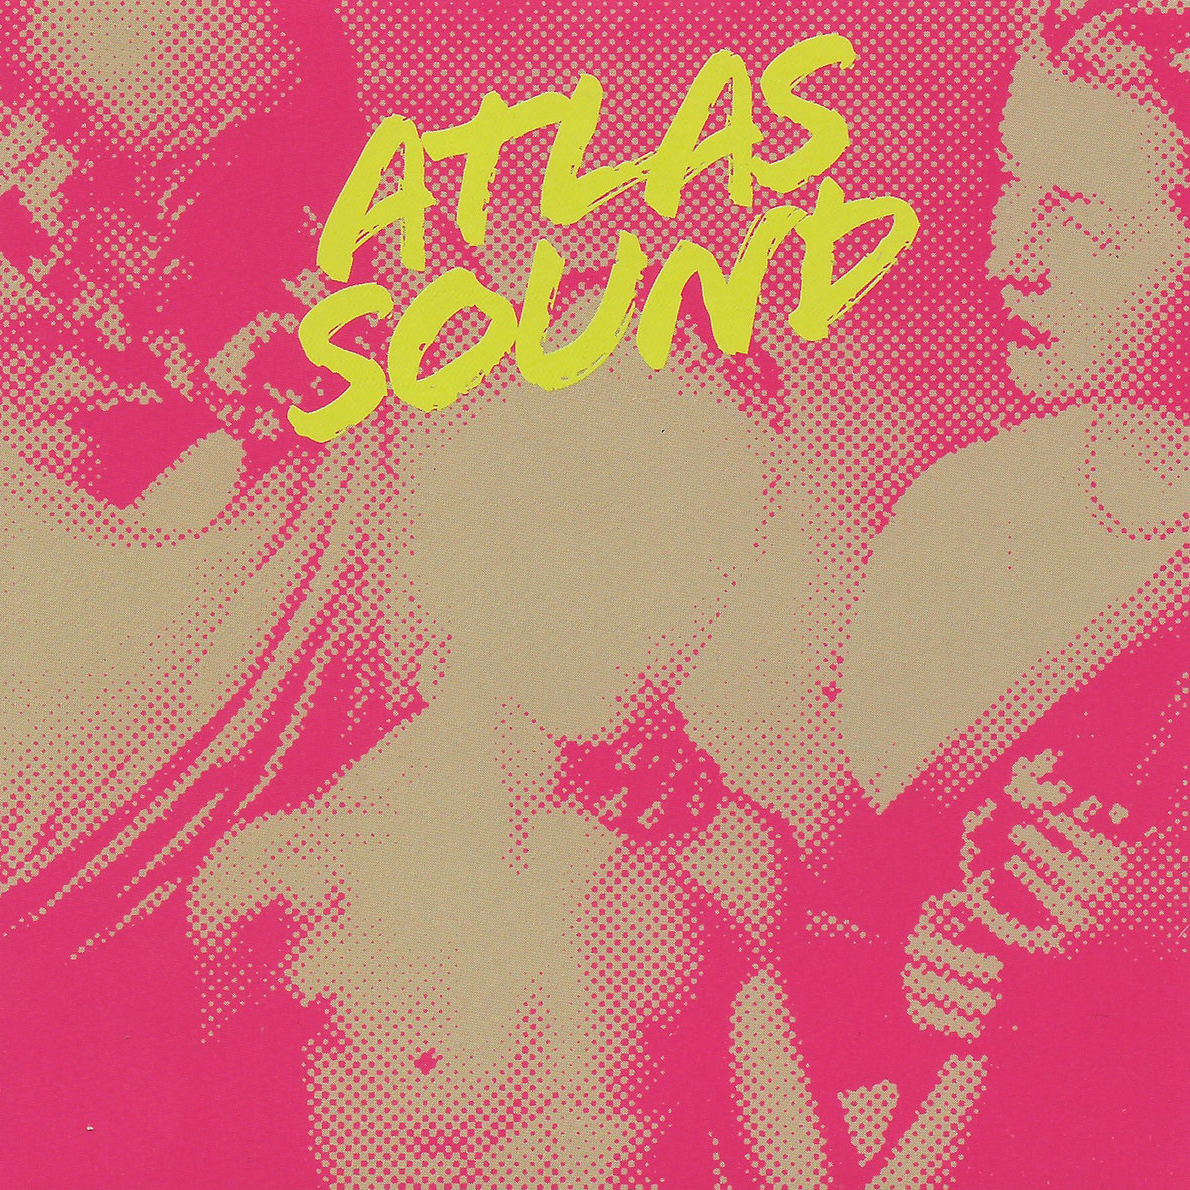 atlas-sound-let-the-blind.png